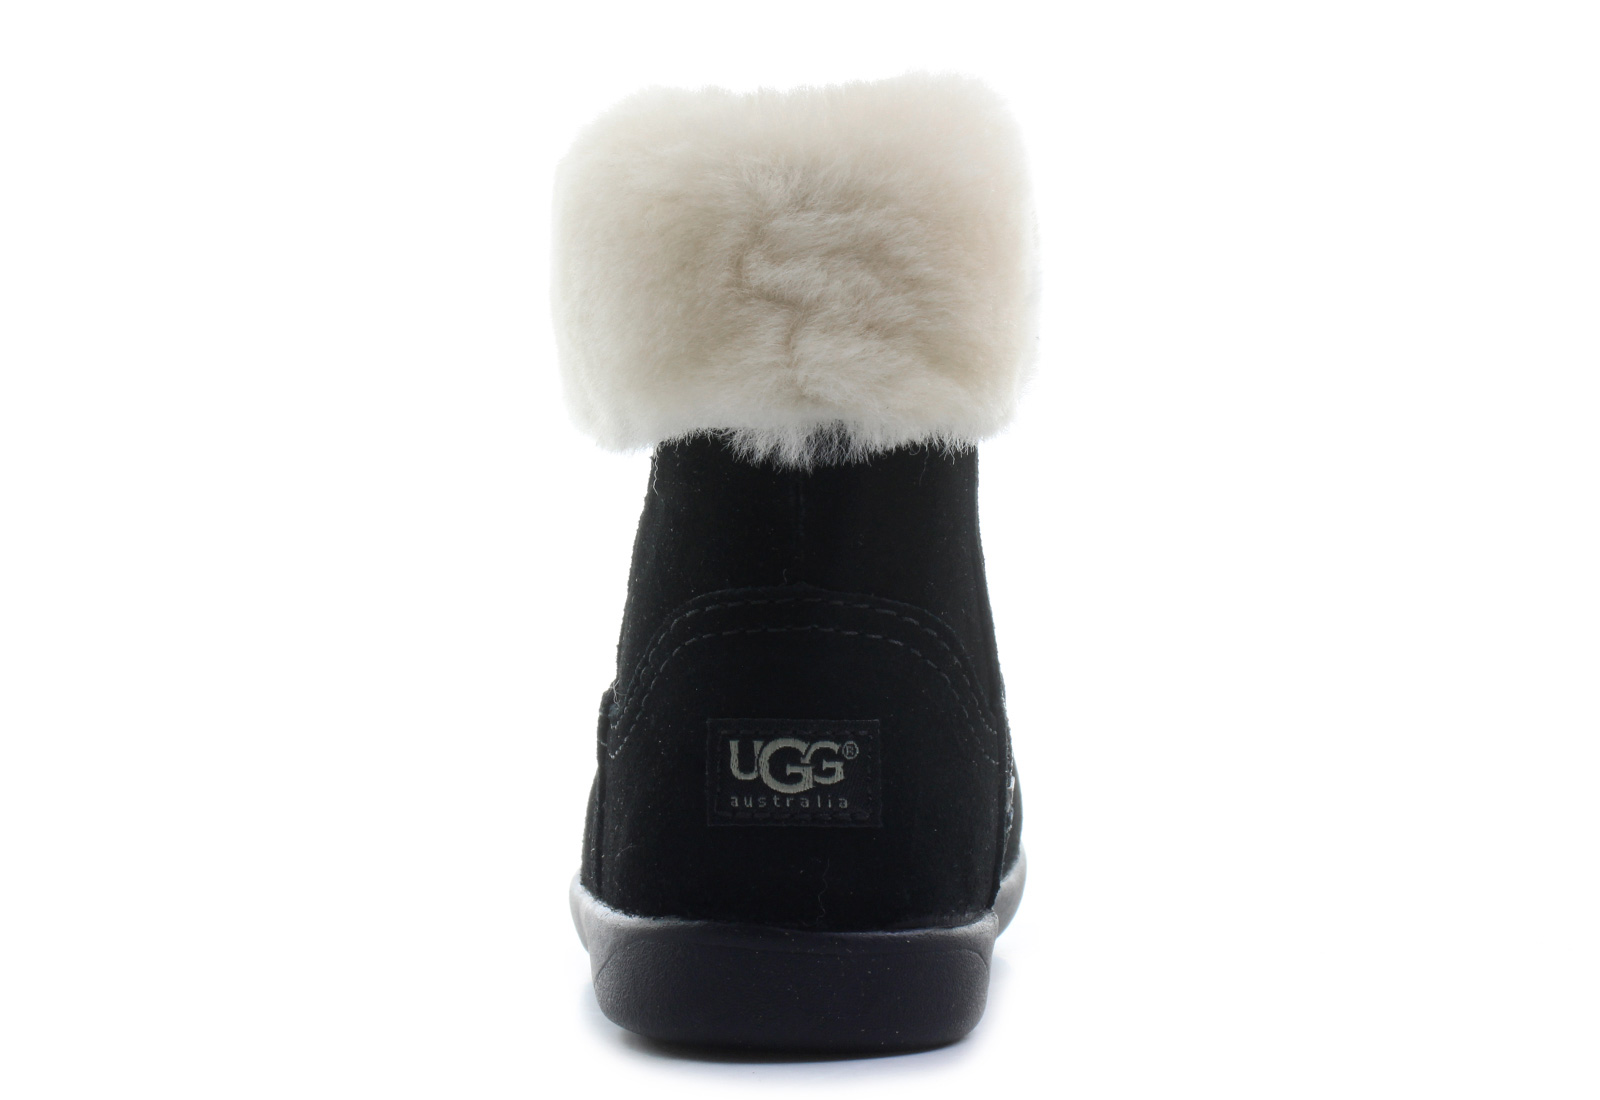 a6aa38a1801 Ugg Boots - Jorie Ii - 1003656T-BLK - Online shop for sneakers, shoes and  boots